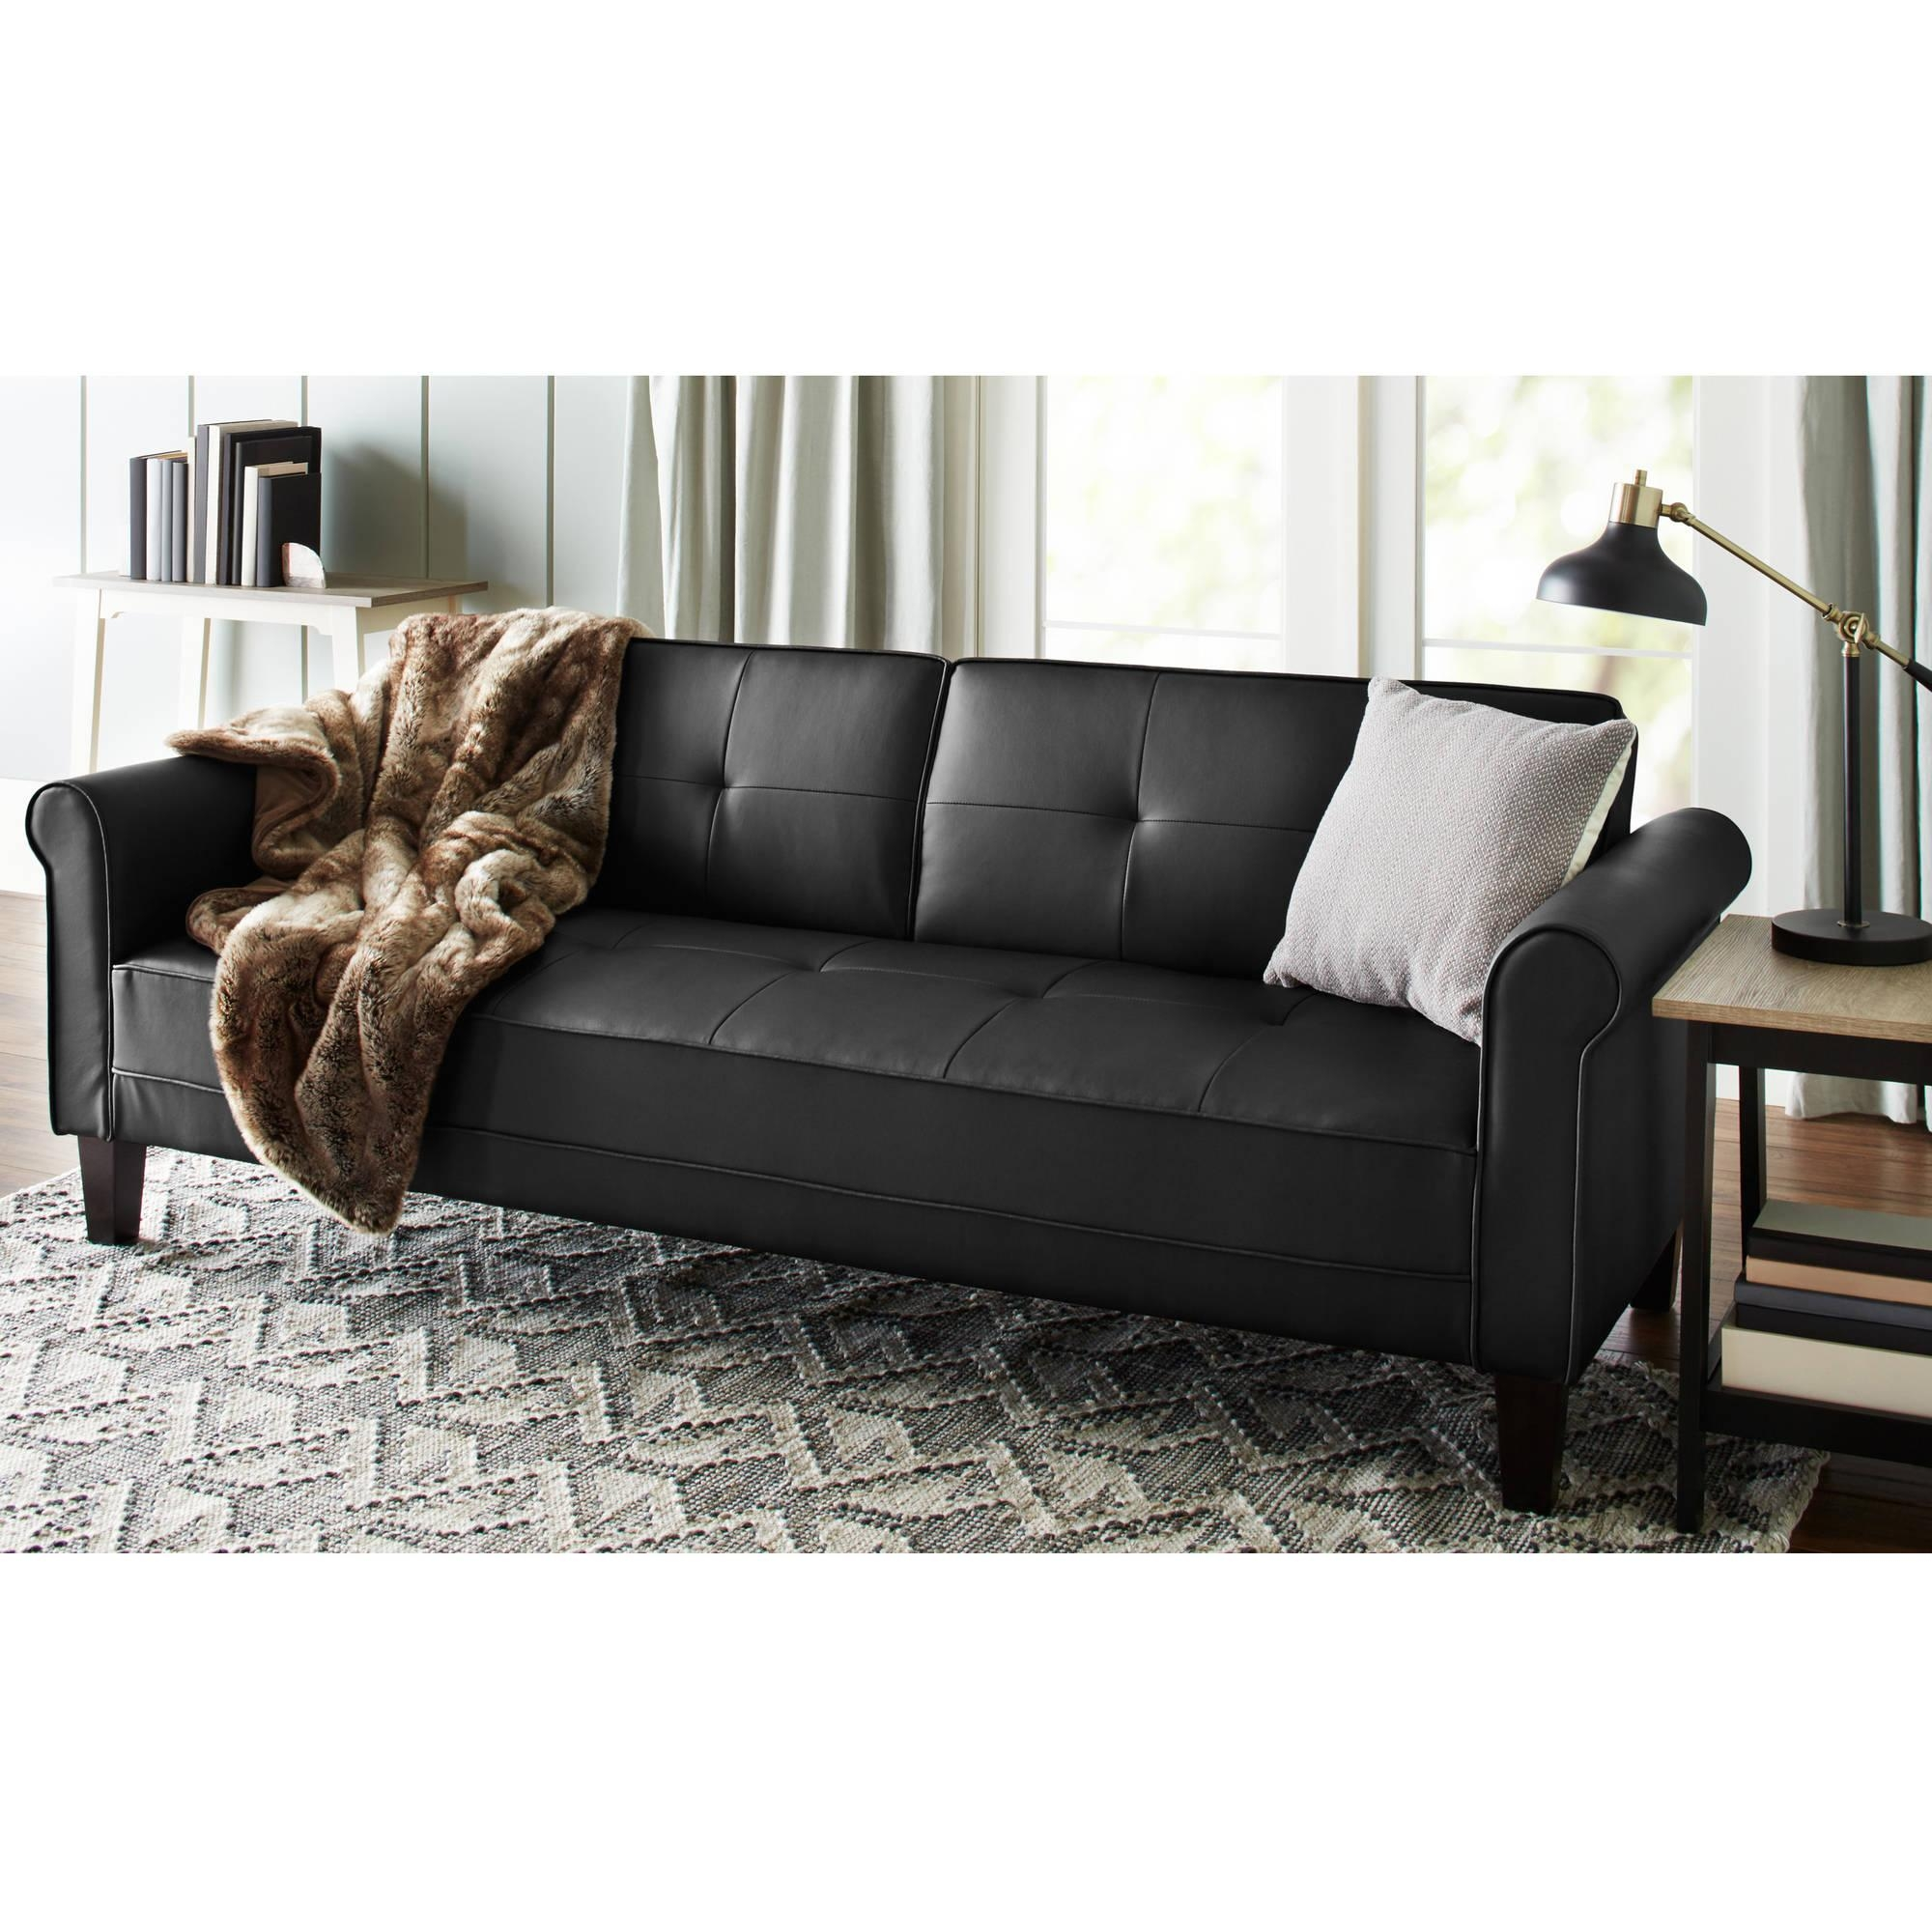 Ufe Norton Dark Brown Faux Leather 3 Piece Modern Living Room Sofa With Wallmart Sofa (View 8 of 20)